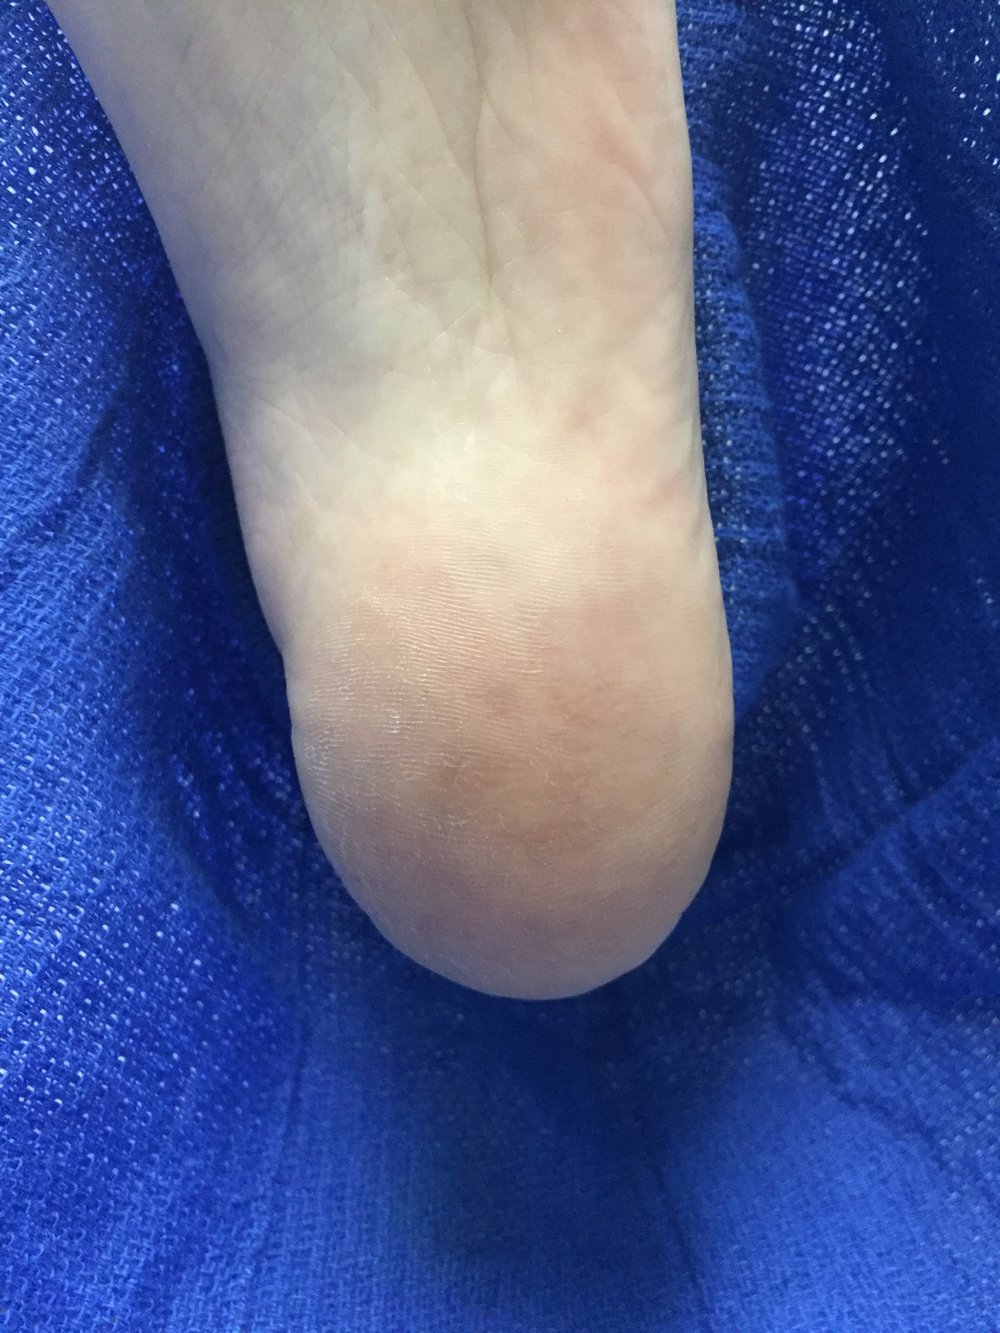 This is our patient on visit 4. A final laser treatment was administered to ensure all warty tissue was killed. It has been 2 years and the warts have not returned.  Call us today   878-313-3338     to schedule at any of our four Podiatry Clinics in Beaver, Butler, or Allegheny County locations, including Podiatry offices Moon Township, Ambridge, Cranberry Township's full service Podiatric office and our newest Foot Clinic, Beaver, PA